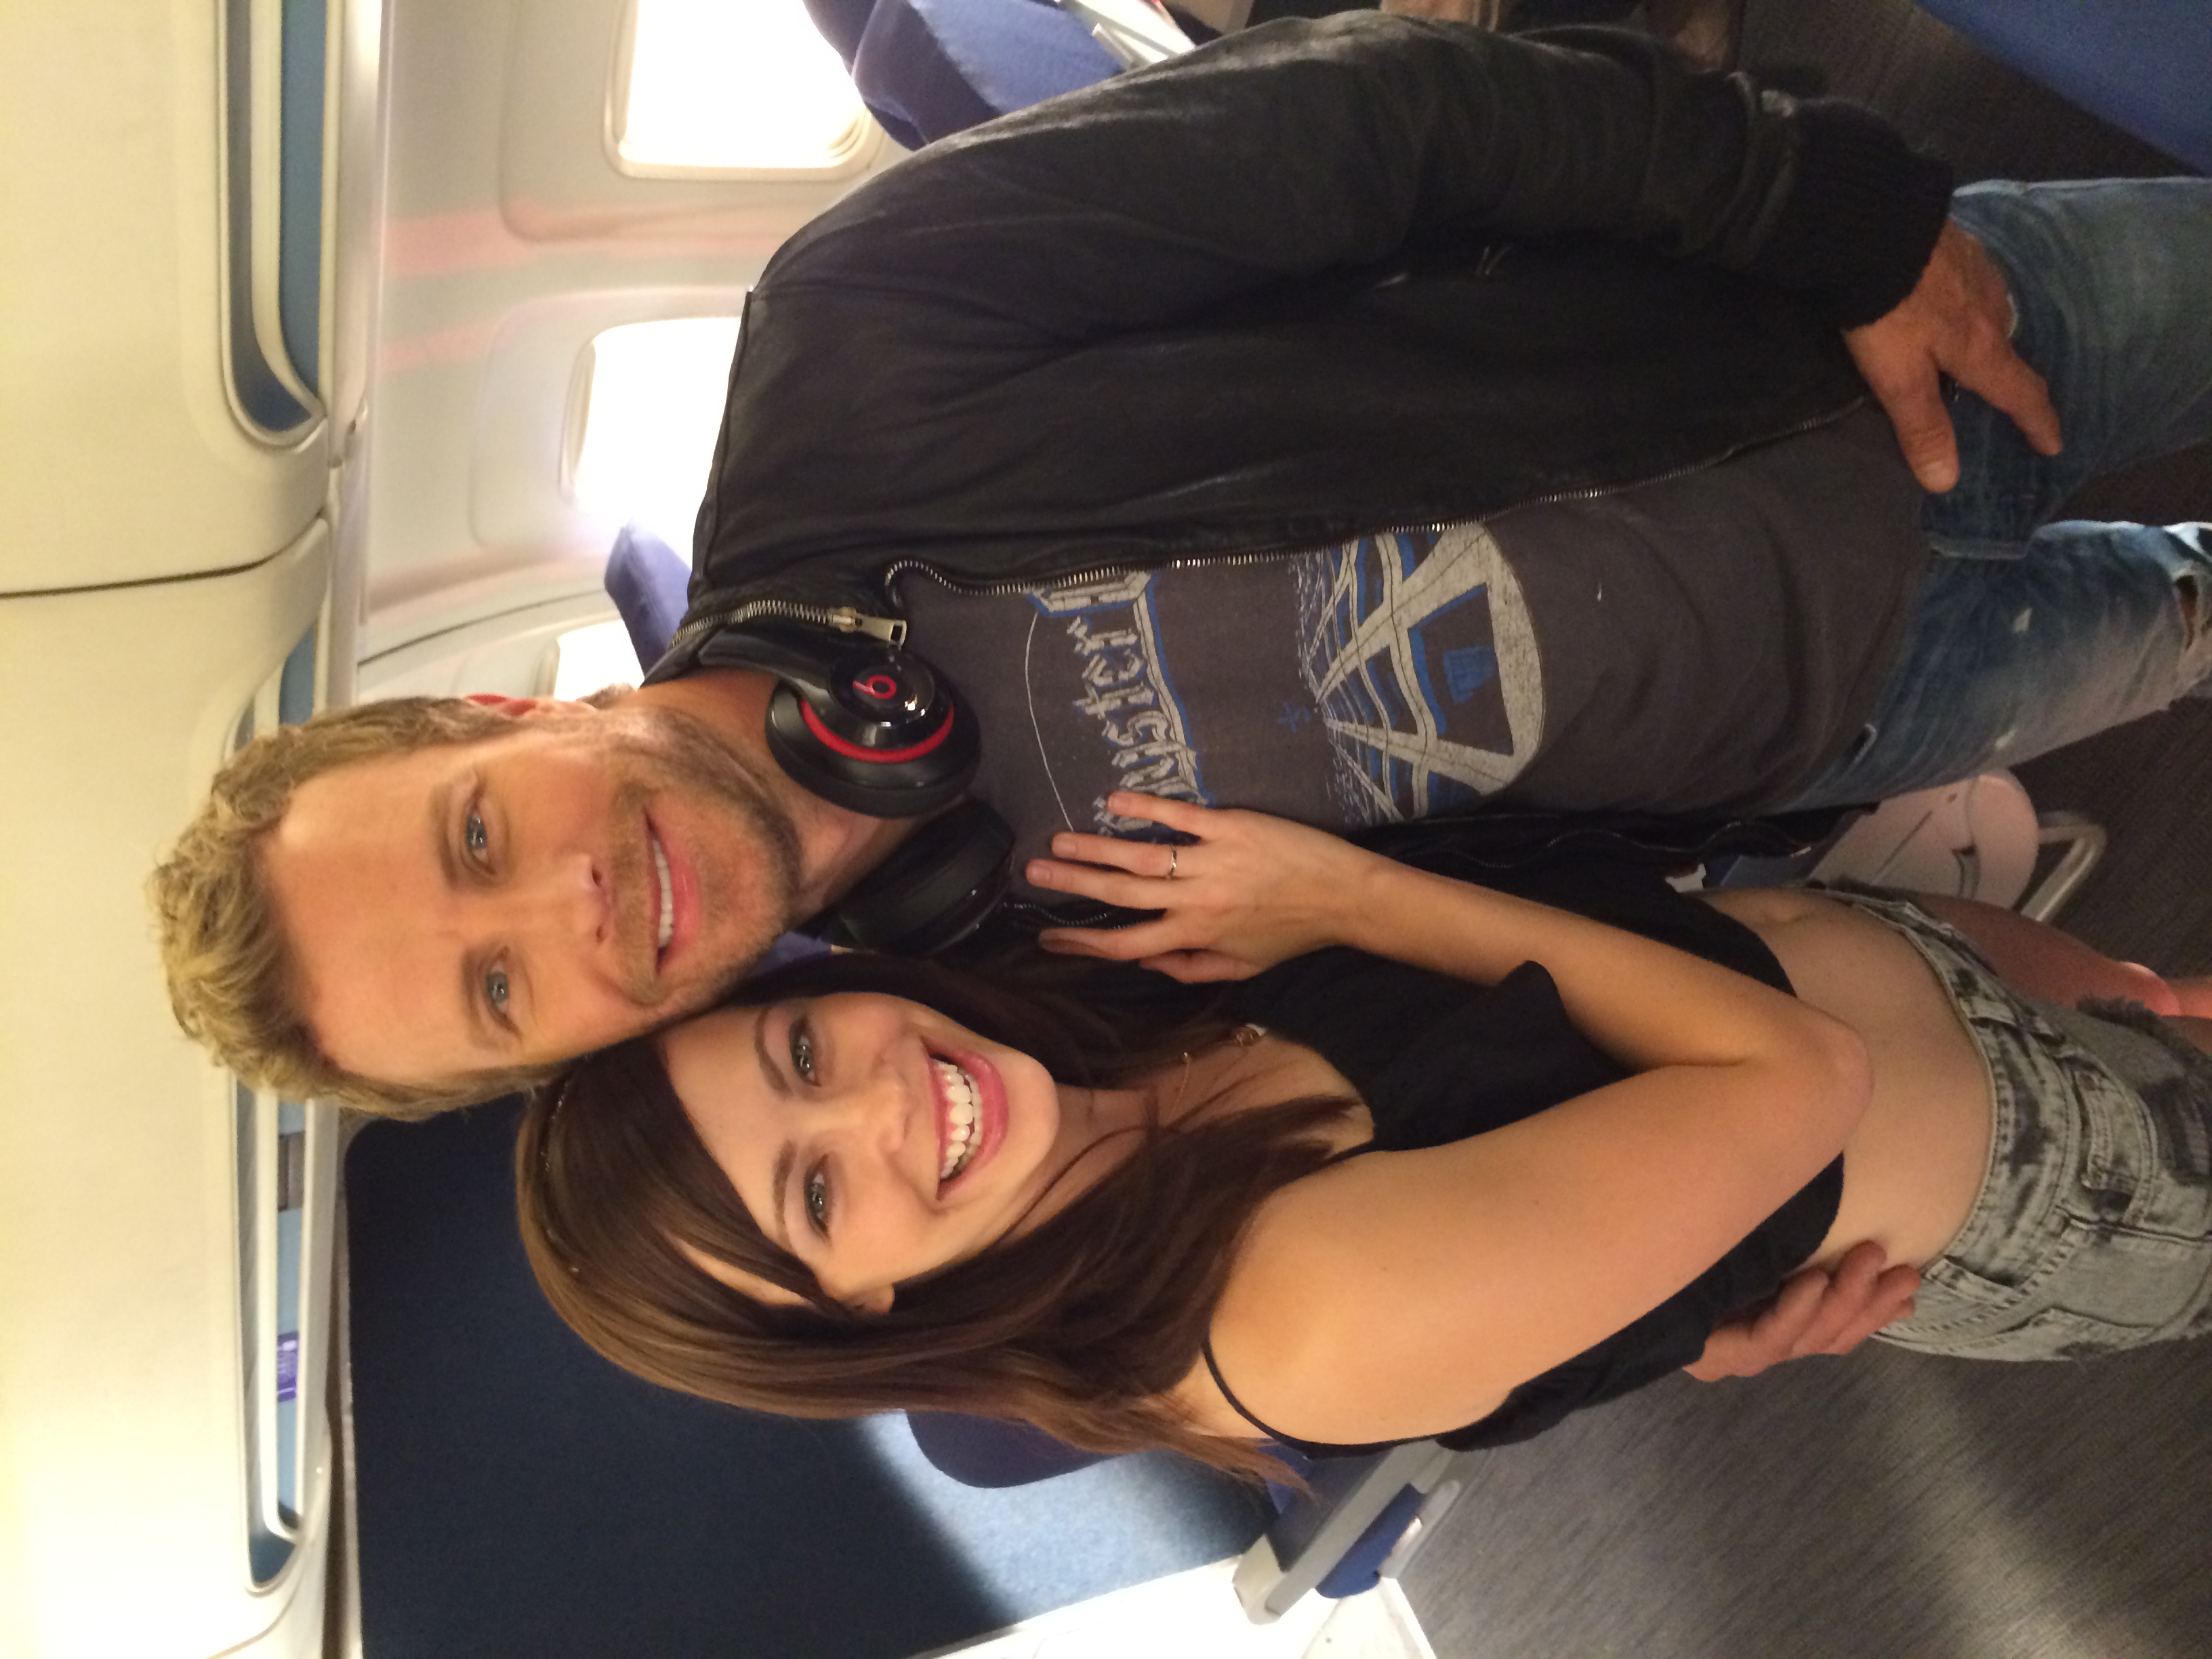 Skyler and Dierks